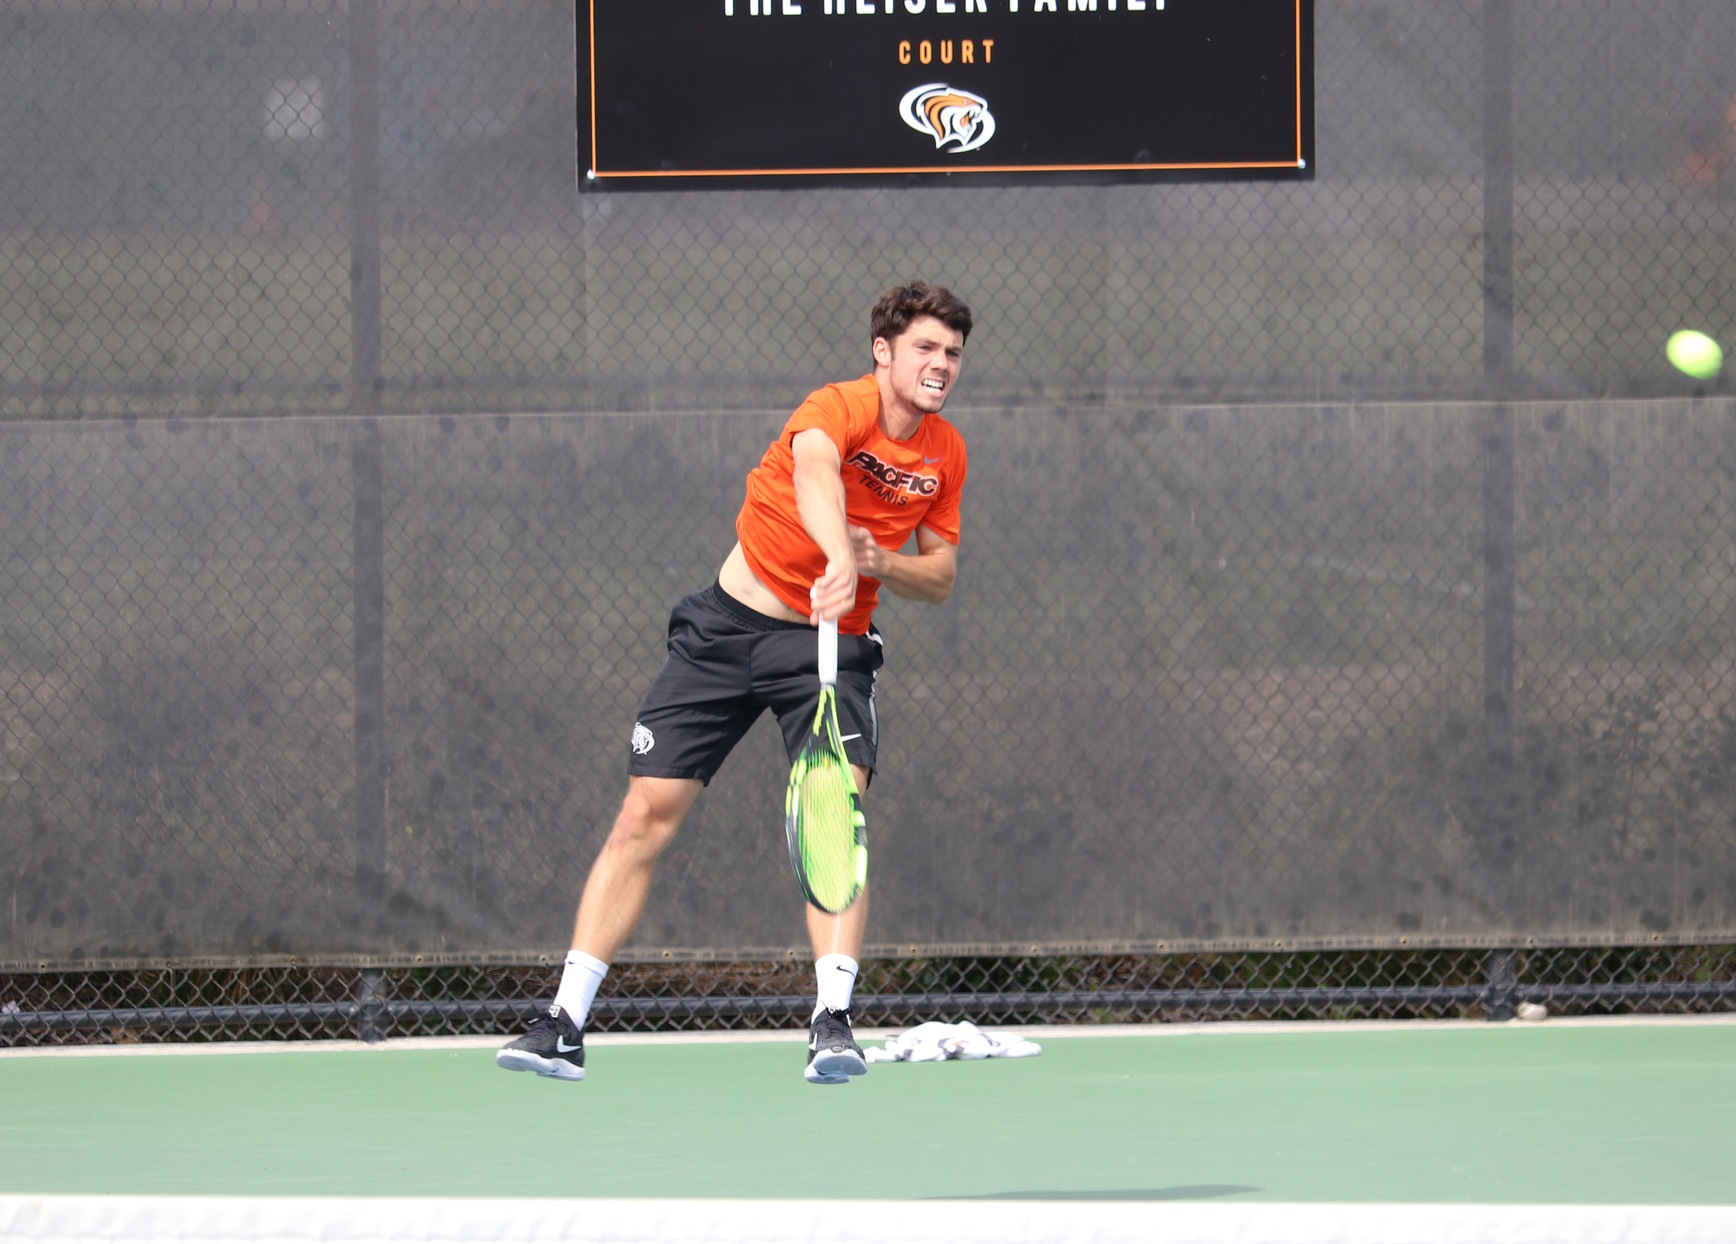 Oliveira Clinches Match Over Gonzaga, 4-3